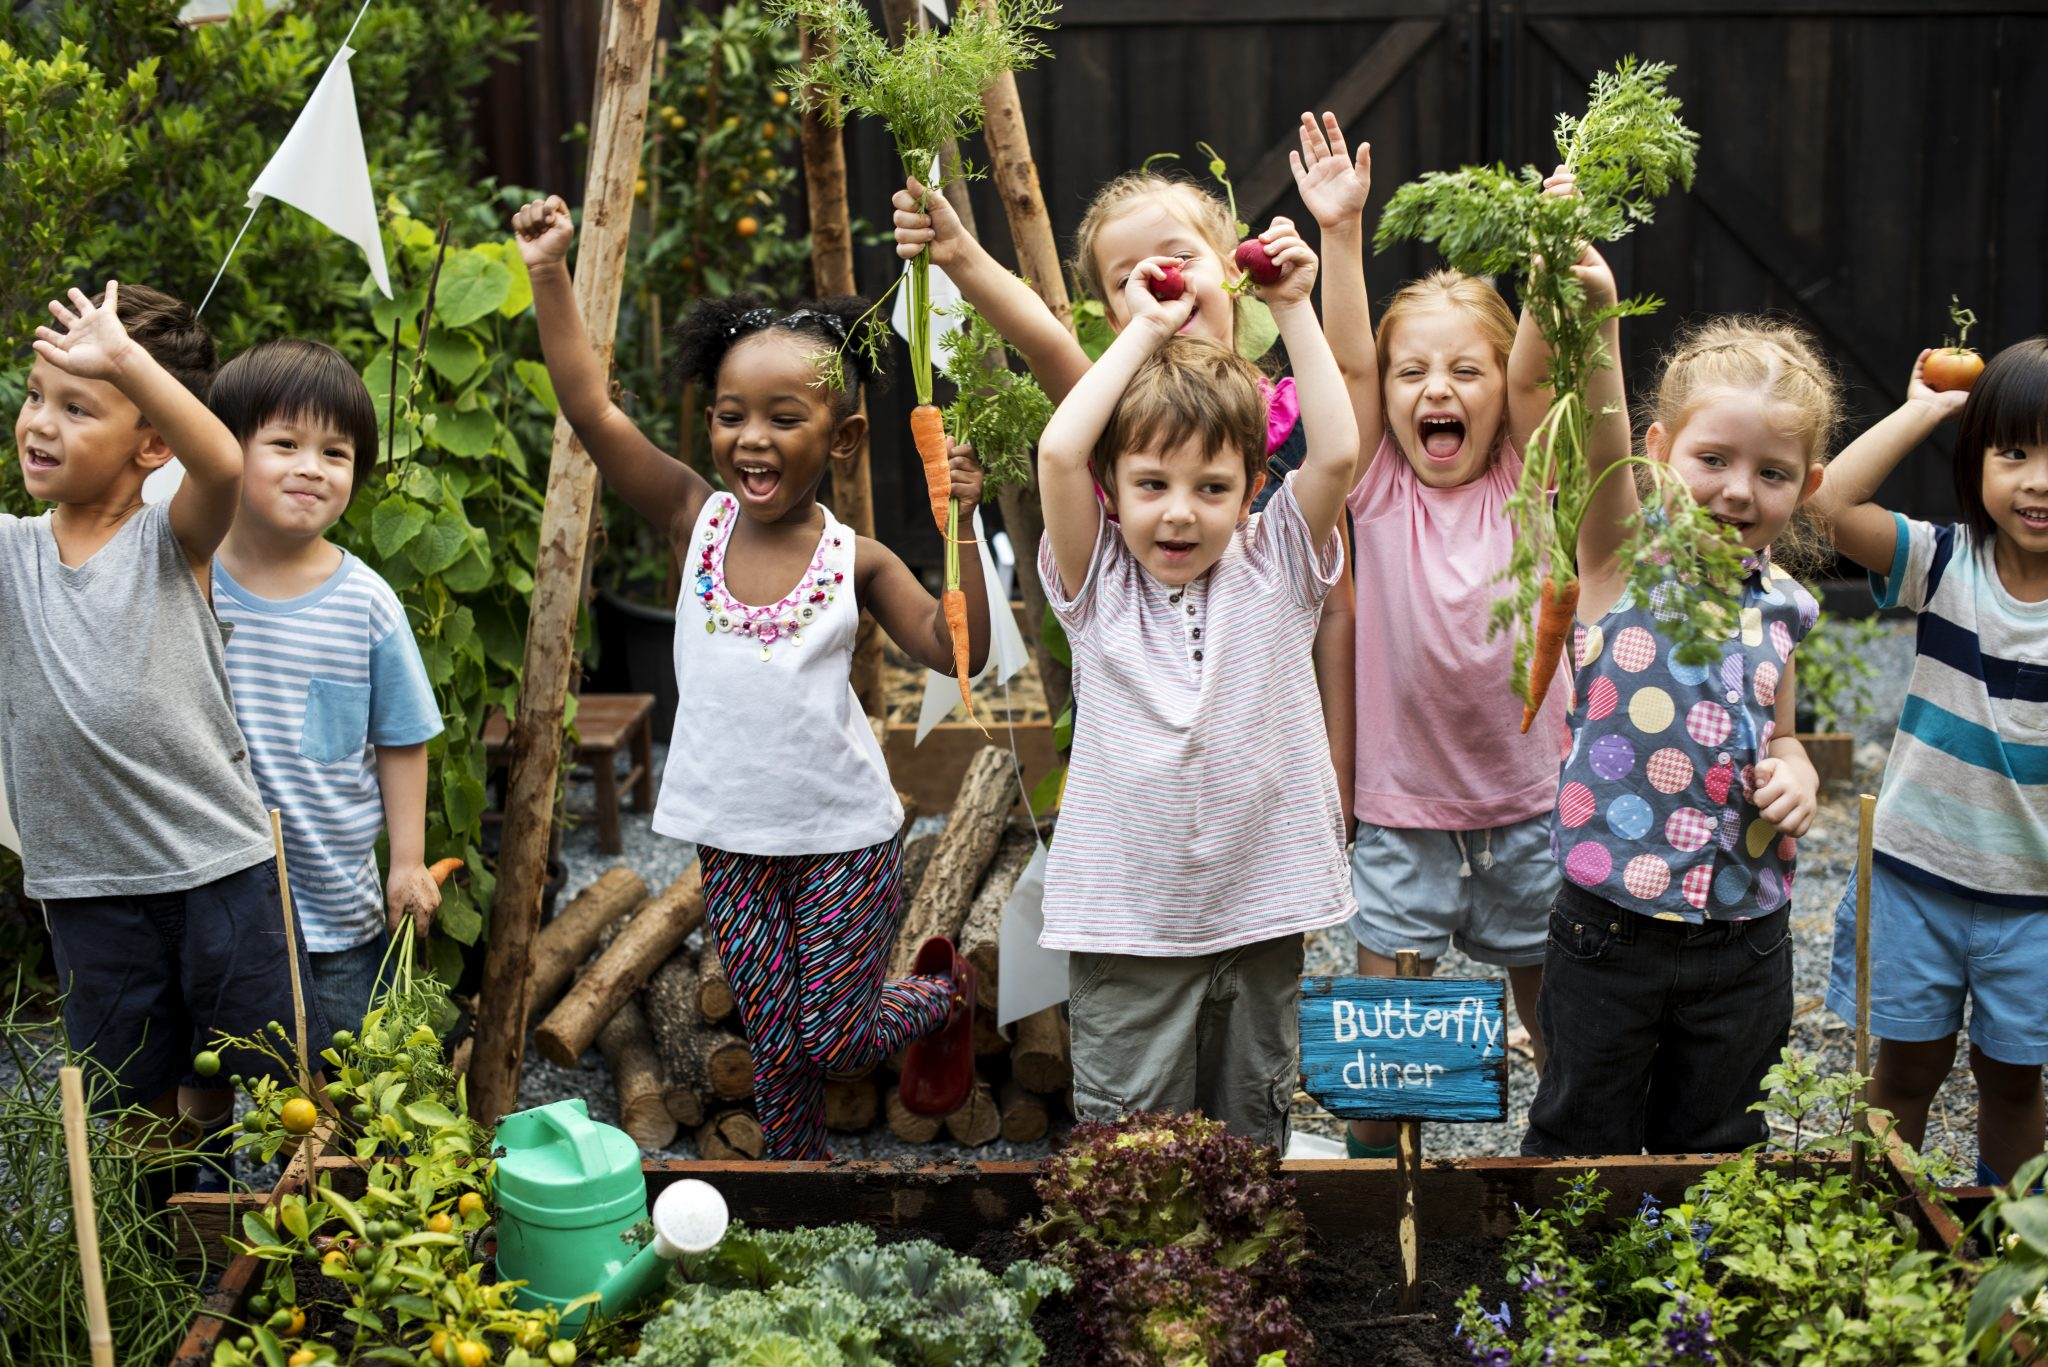 A diverse group of children in a garden